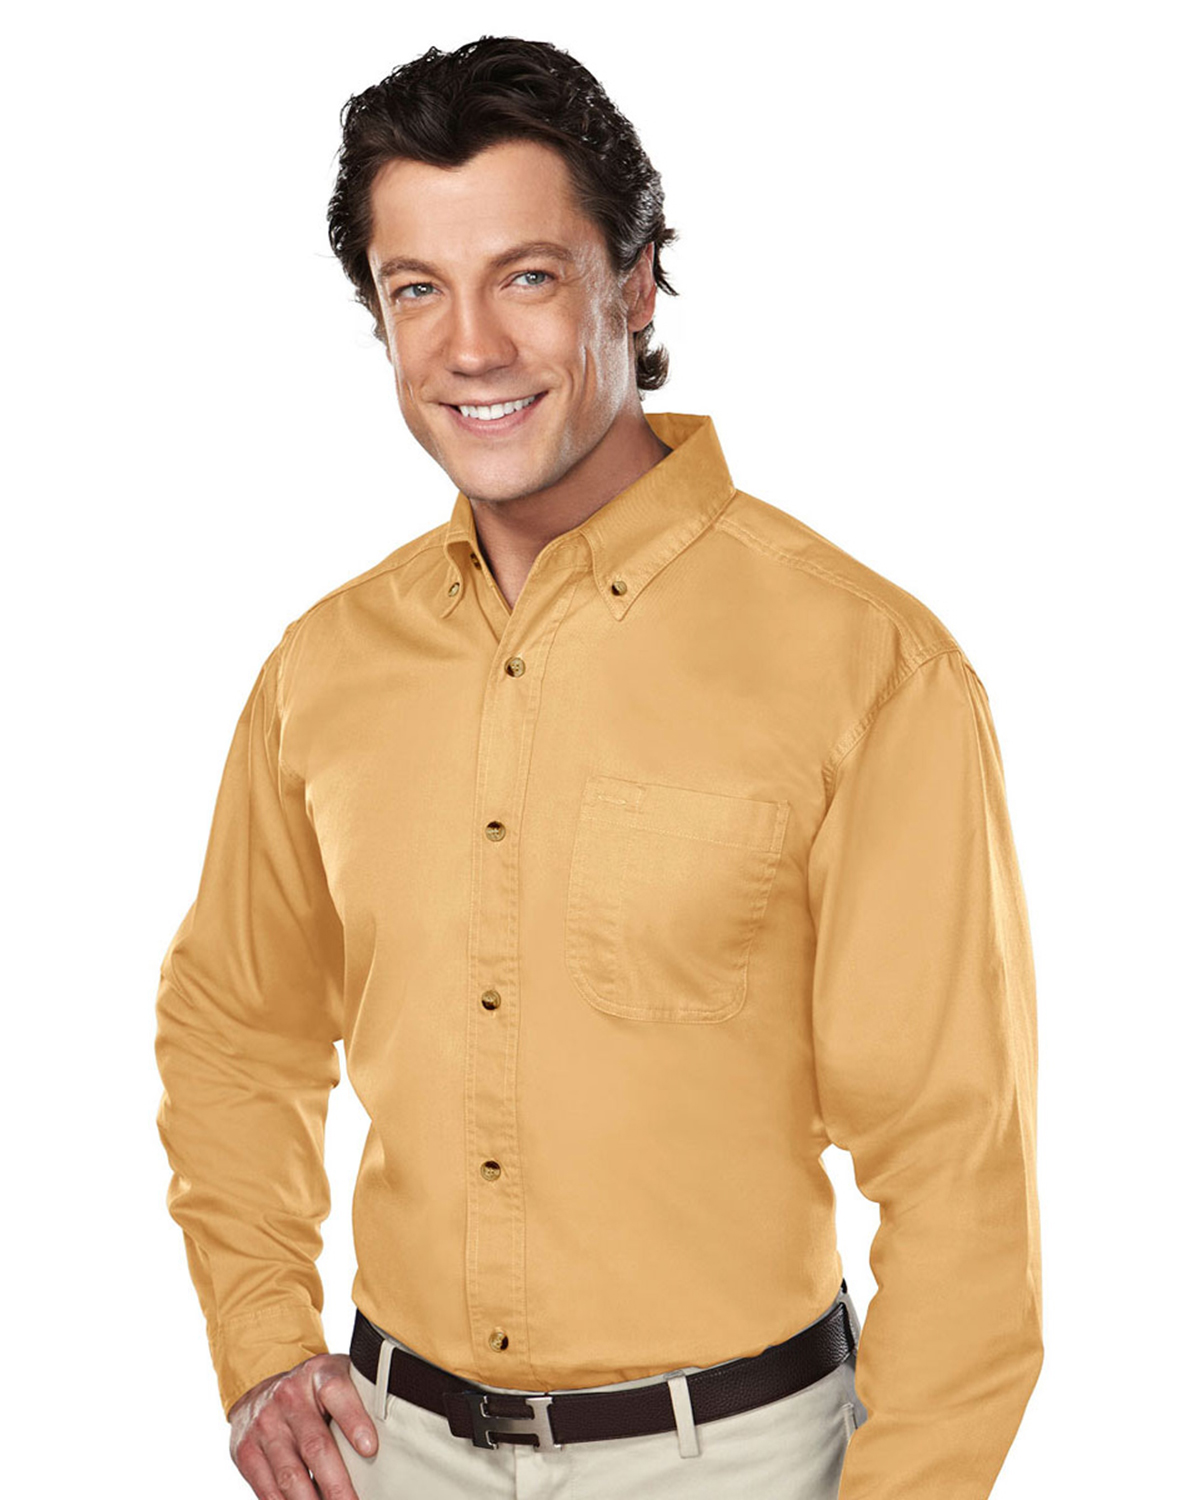 Tri Mountain Stain Resistant Long Sleeve Twill Dress Shirt